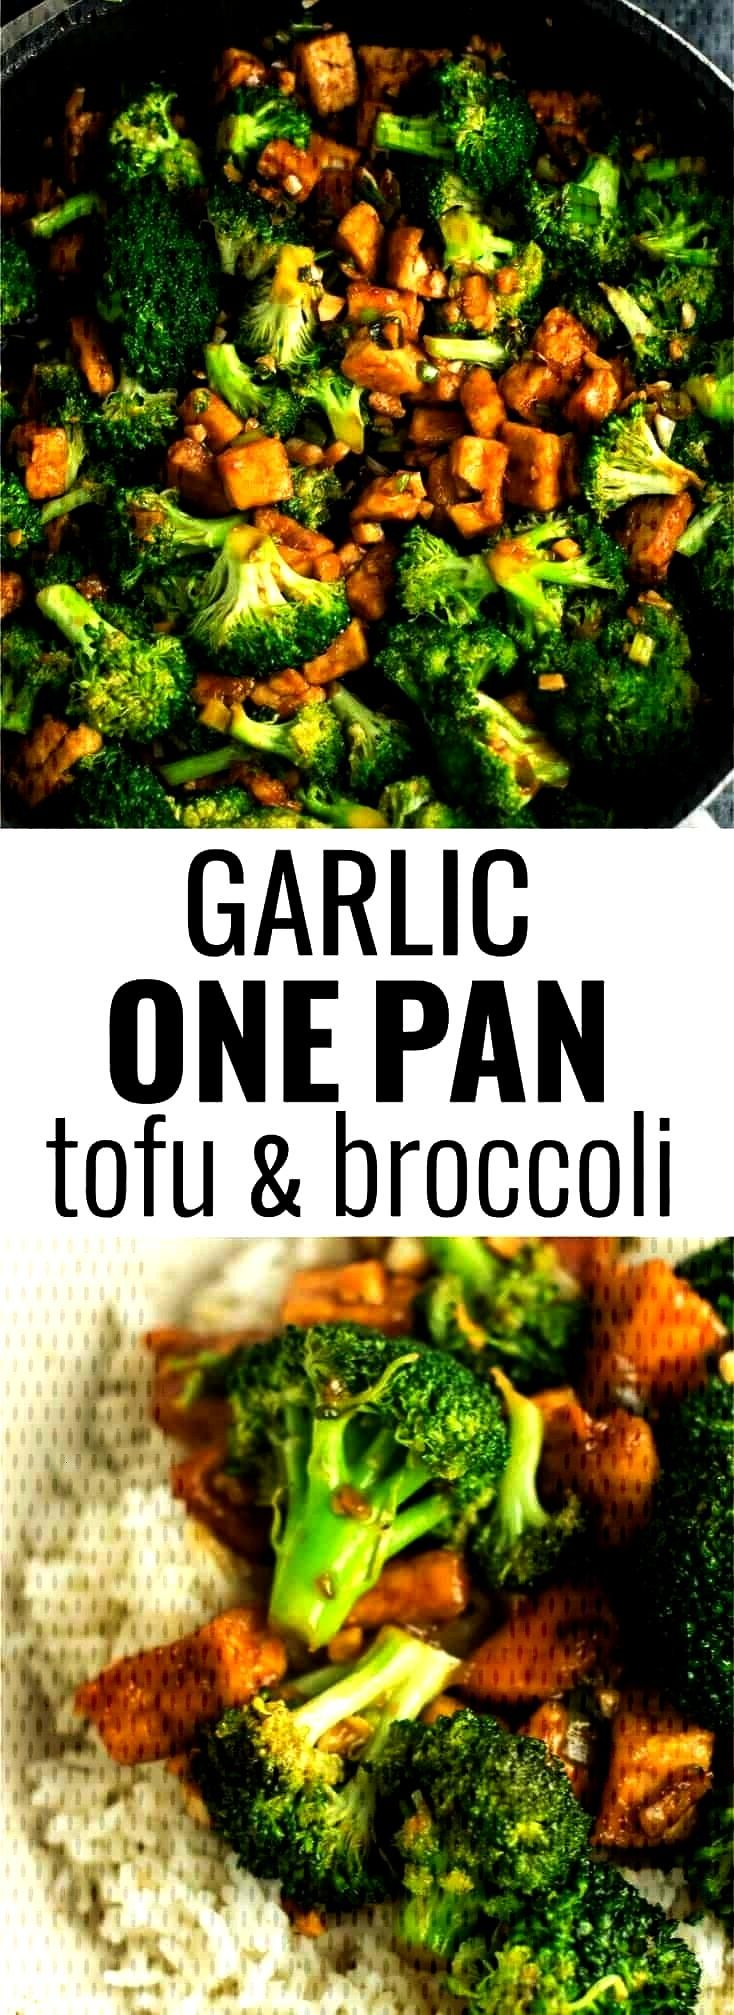 Suspended Garlic tofu broccoli skillet recipe made in just one pan. A healthy alternative ... -Acco